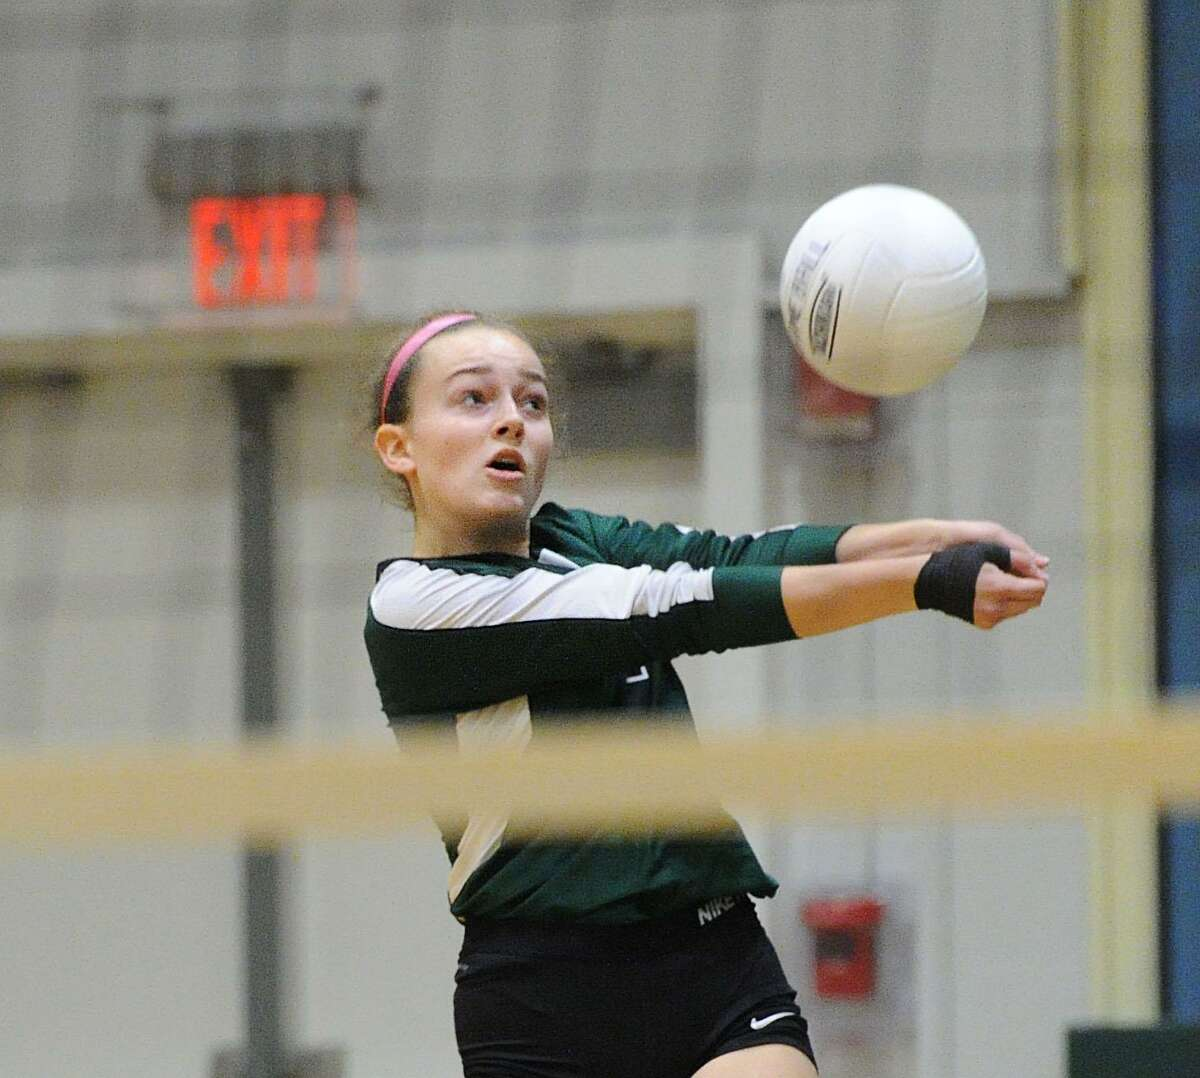 Ellie McKenney (7) of Sacred Heart returns a shot during the girls high school FAA semi-final volleyball playoff match between Sacred Heart Greenwich and School of the Holy Child at Sacred Heart in Greenwich, Conn., Wednesday, Nov. 9. 2016. Sacred Heart beat Holy Child 3-0 to advance to the final.